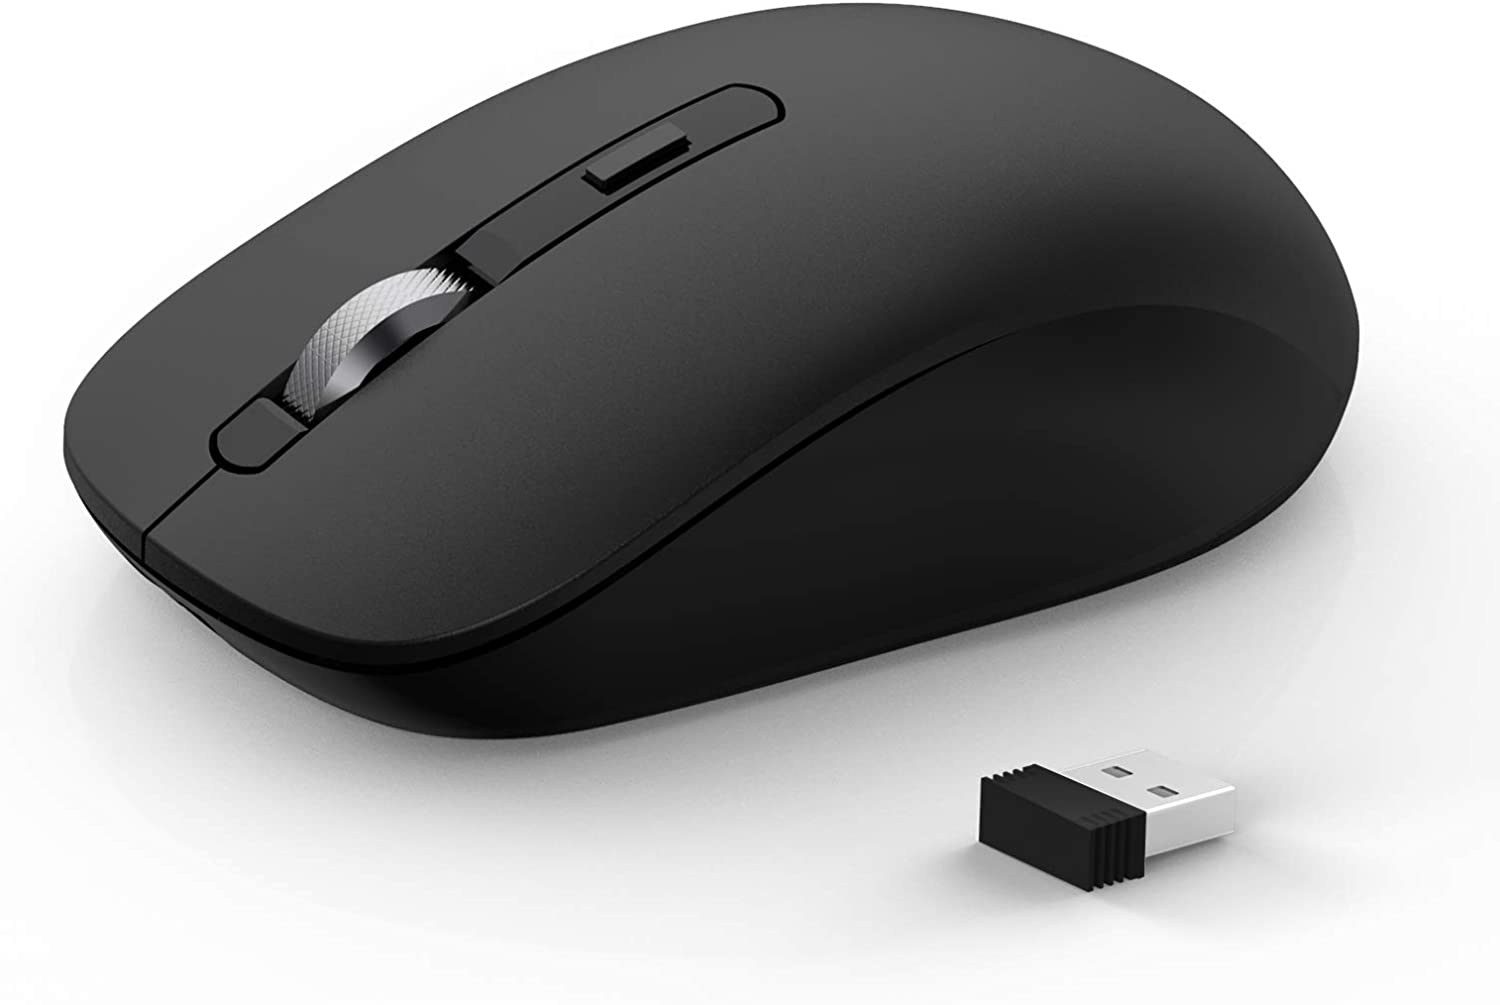 Bluetooth Mouse, JOYACCESS 2.4G Wireless Bluetooth Mouse Dual Mode(Bluetooth 5.0/3.0+USB), Computer Mice for Laptop/ Computer MacBook/ Windows/ MacOS/ Android - Black